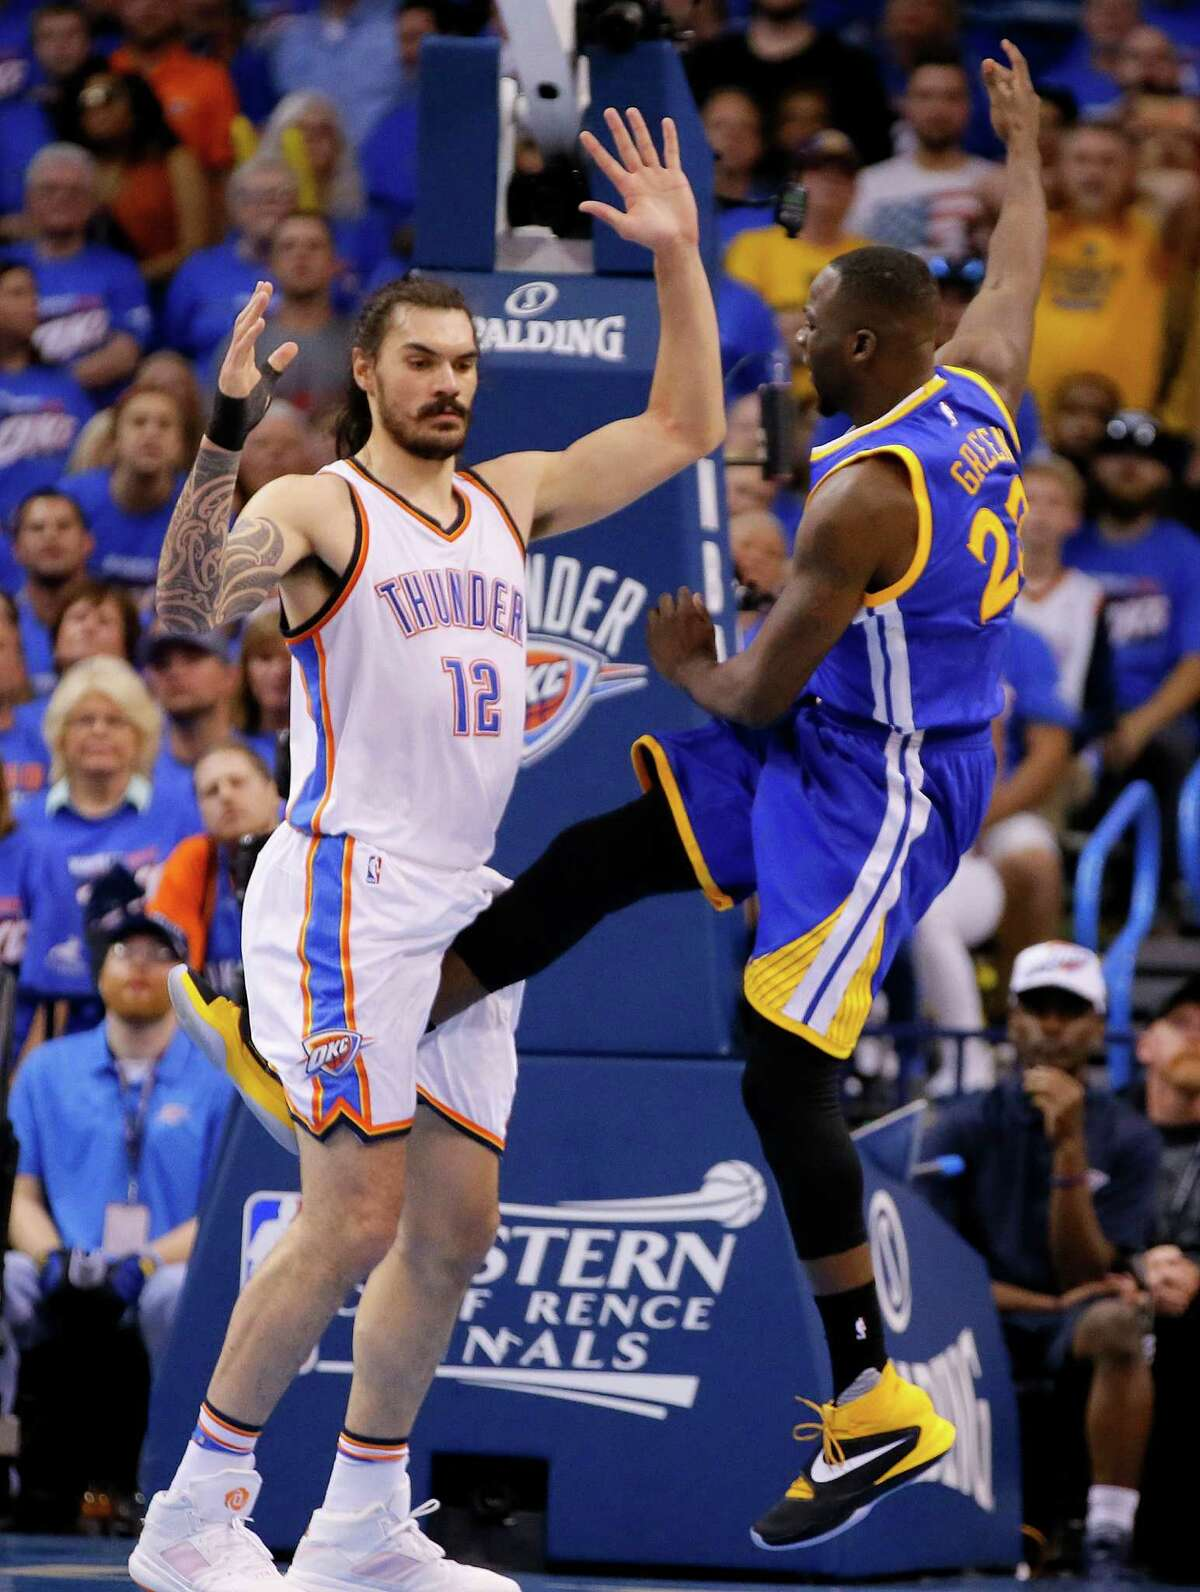 In this Sunday, May 22, 2016 photo, Golden State's Draymond Green's leg is between the legs of Oklahoma City's Steven Adams (12) during Game 3 of the Western Conference finals in Oklahoma City. Draymond Green has been suspended by the NBA for Game 4 of the Western Conference finals for kicking Adams in the groin.